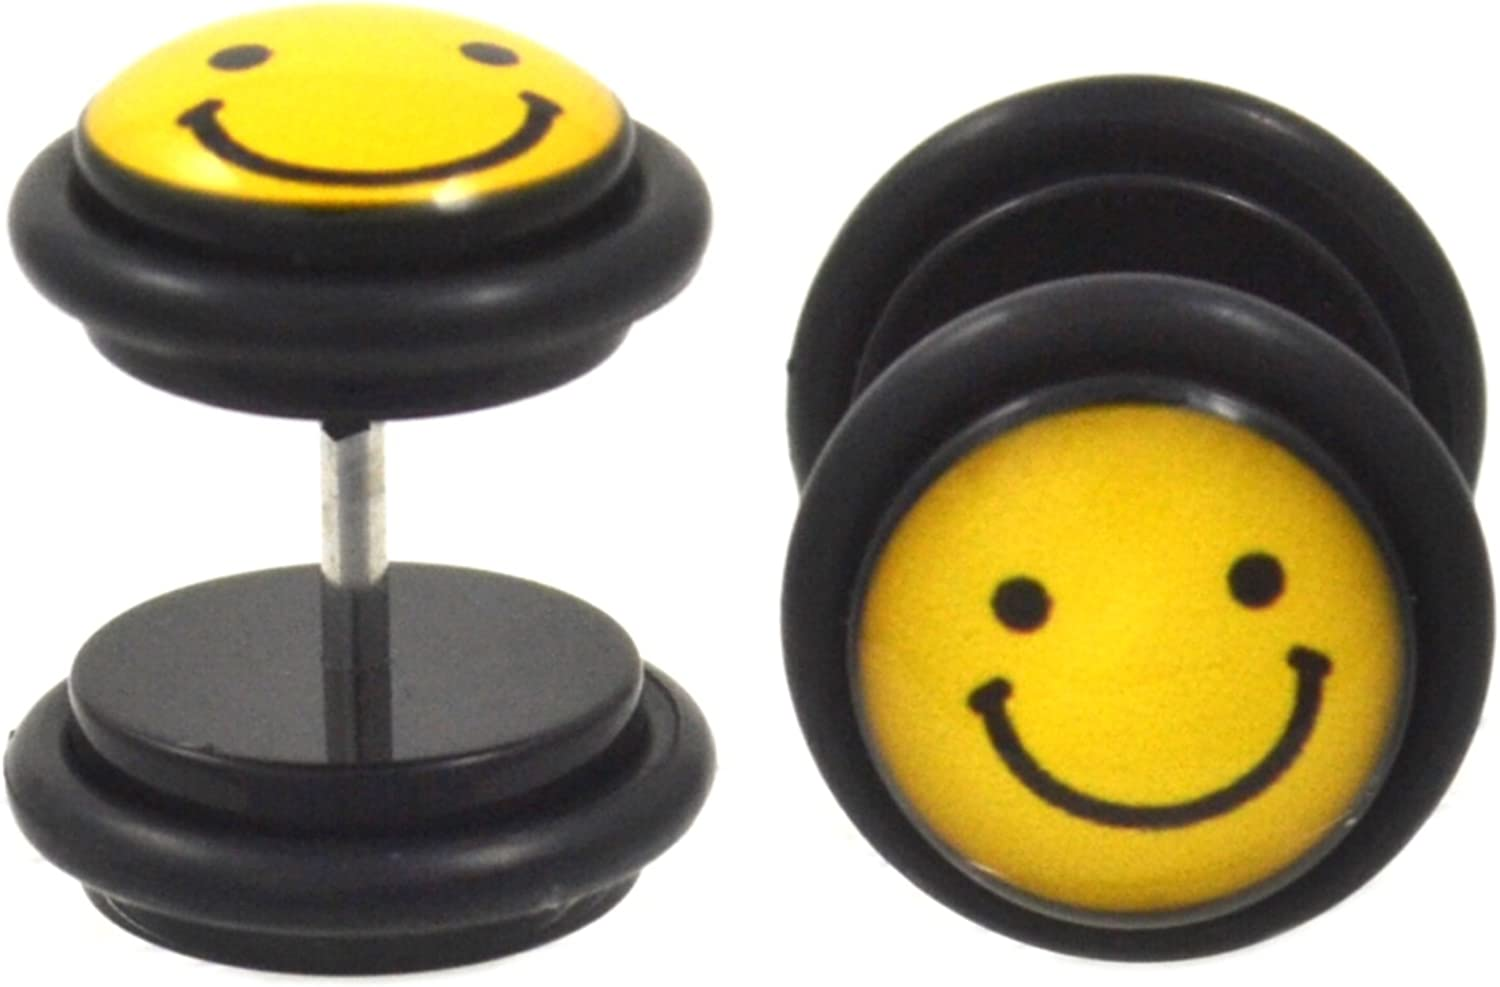 Smiley Face Earrings 12 Different Pairs Yellow Metal Posts Plastic Stoppers